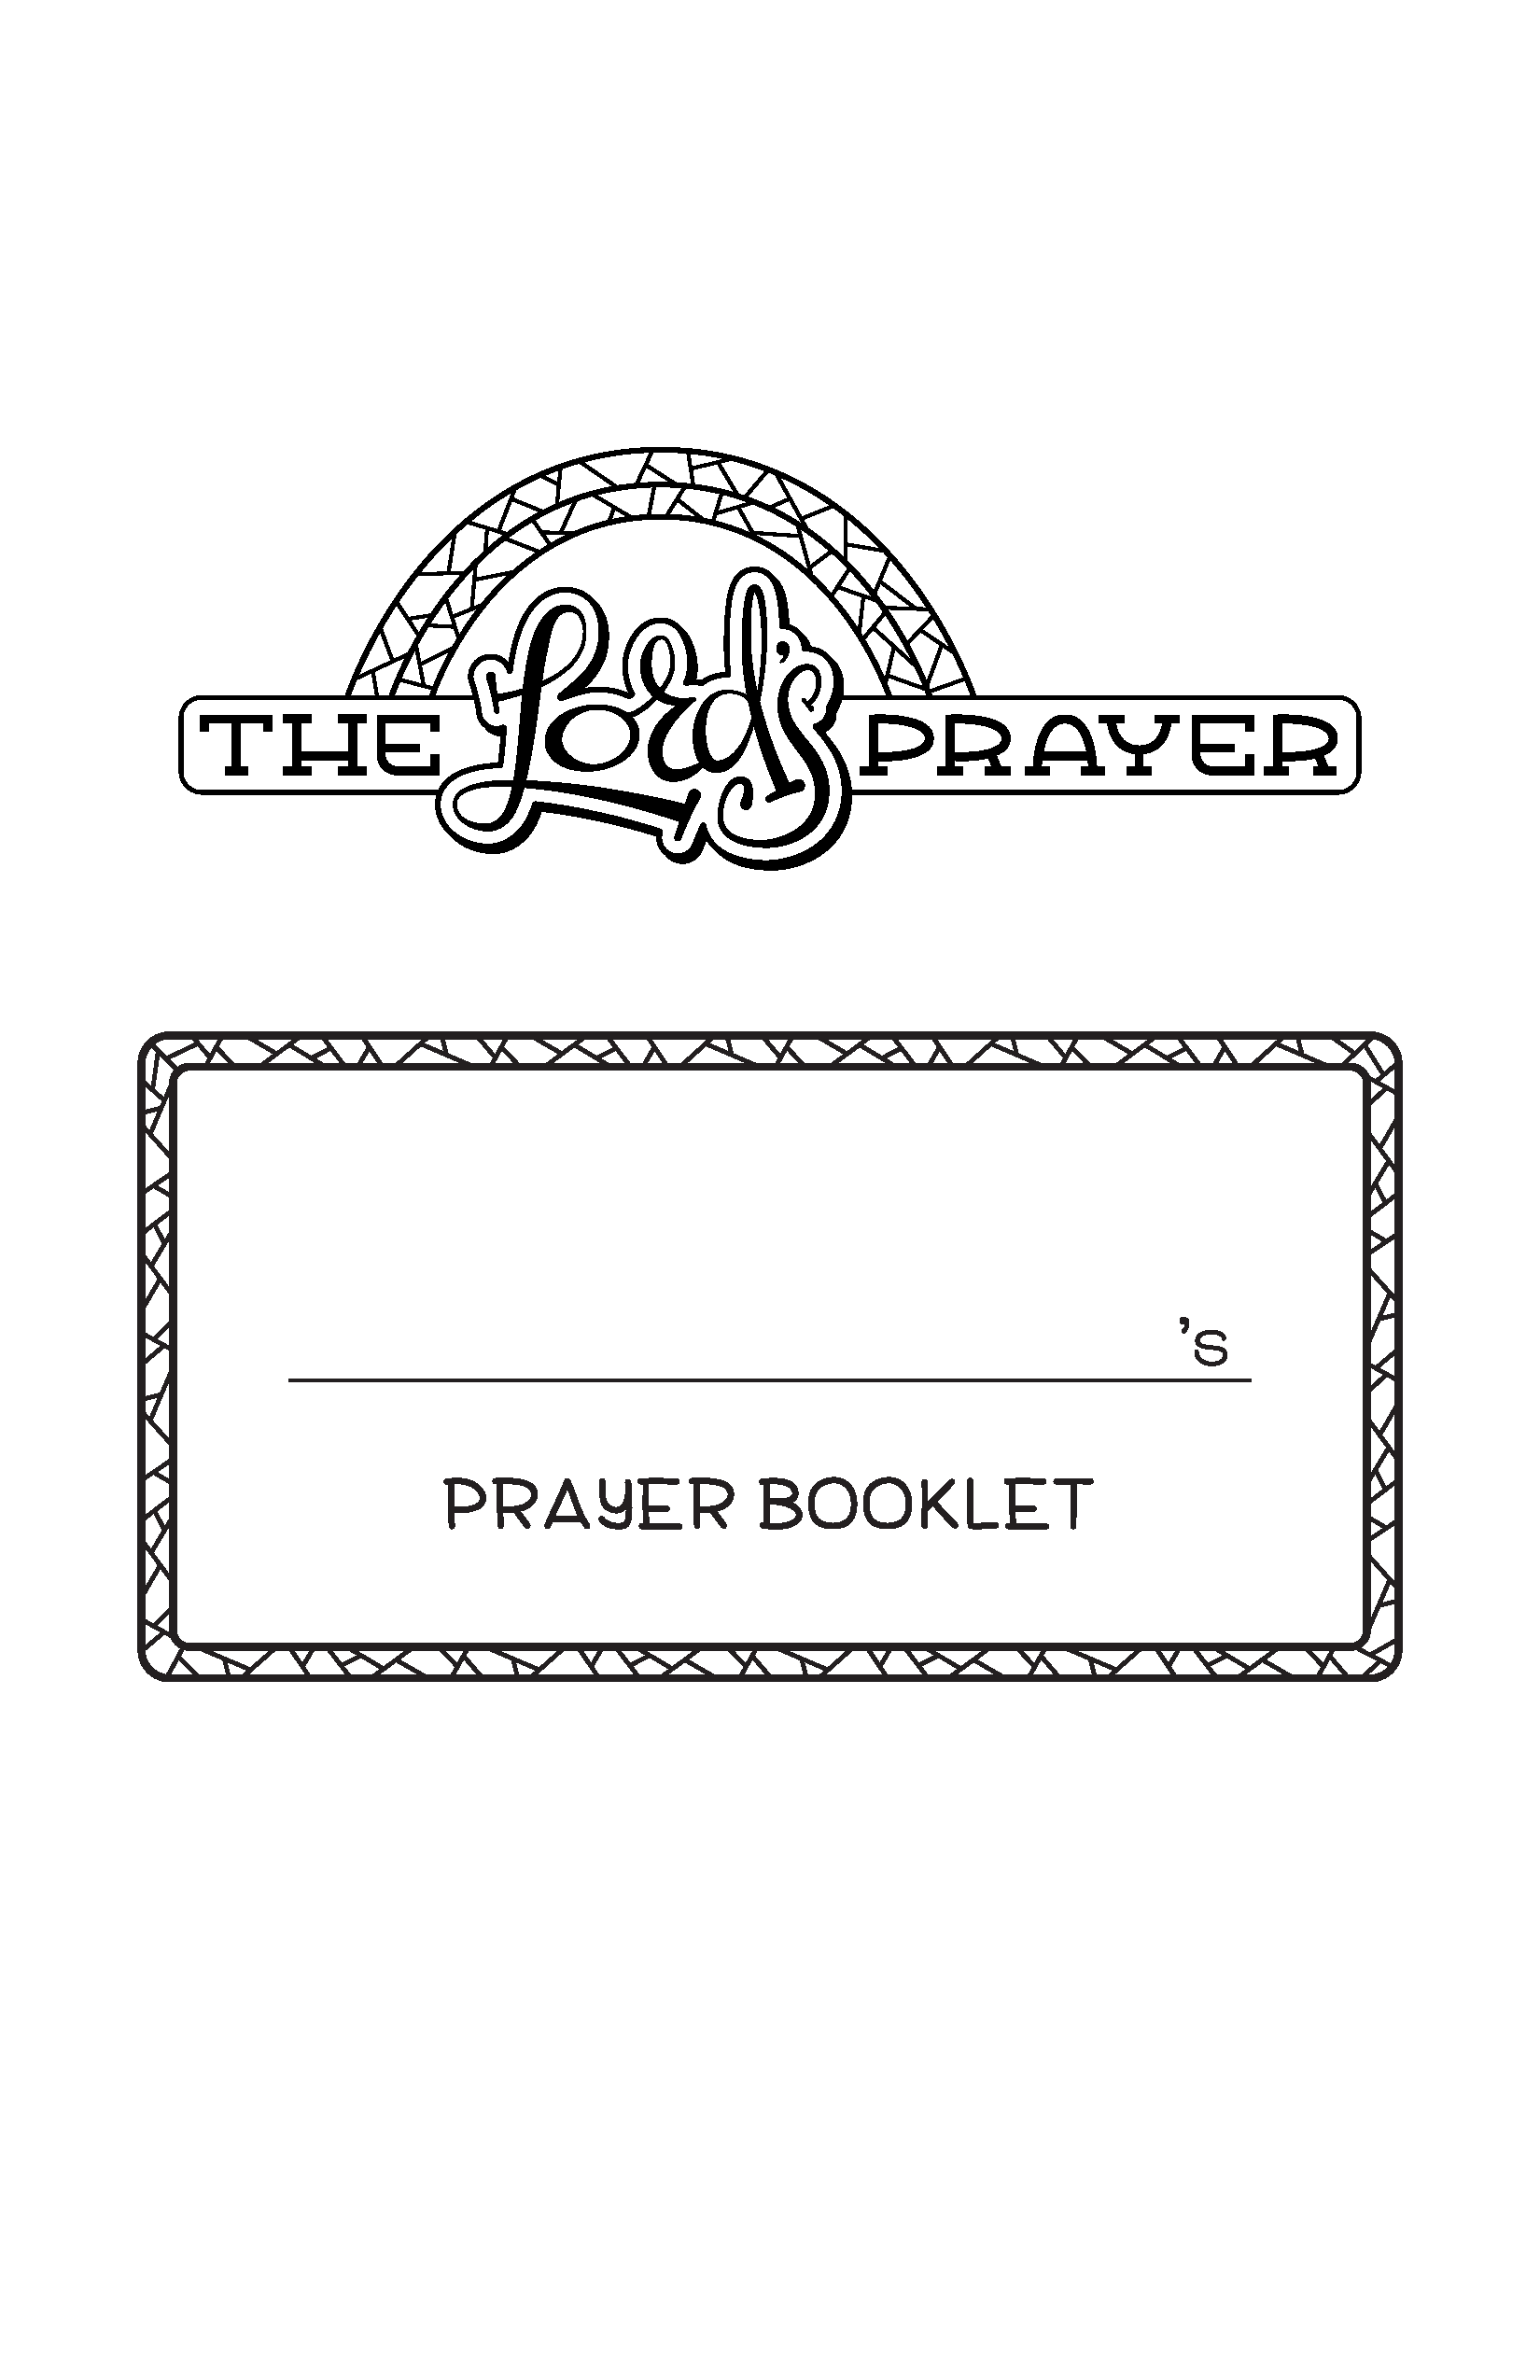 The Lord's Prayer prayer booklet